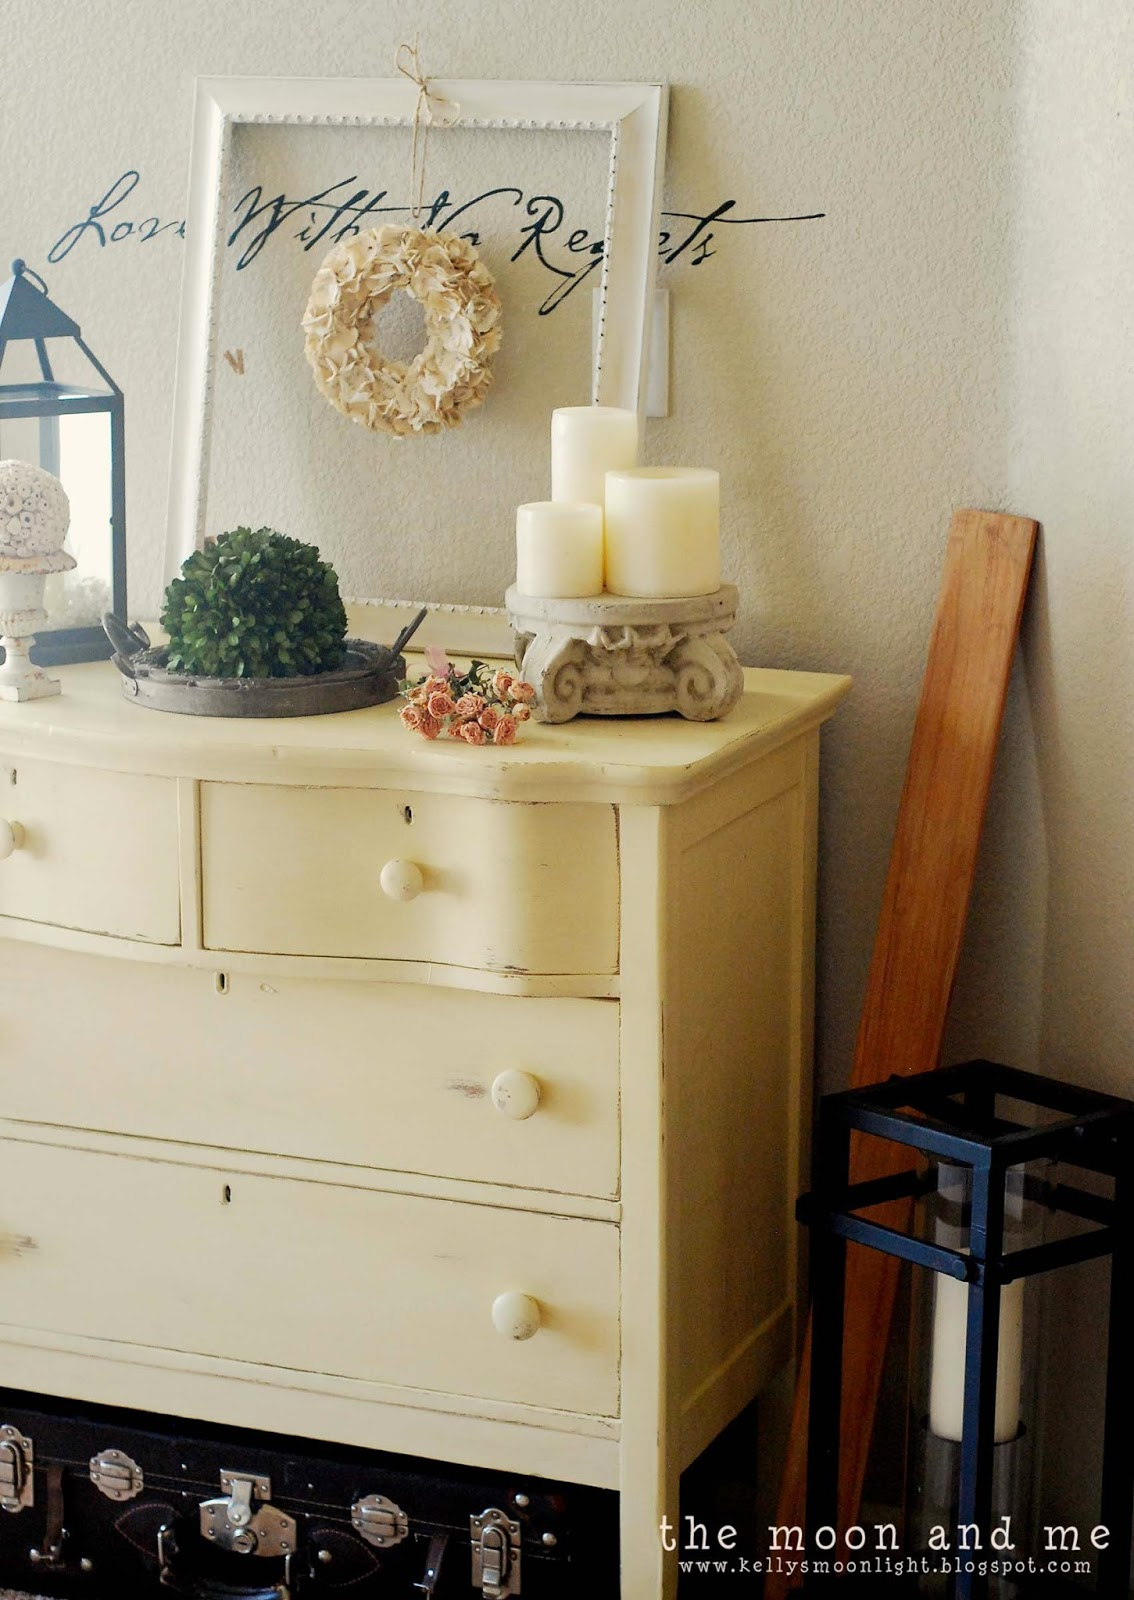 http://2.bp.blogspot.com/-4NGaOn7riAQ/UxuP0jjDk3I/AAAAAAAAE90/QAZLtGWrO2w/s1600/chalk+paint+dresser+after+15.jpg